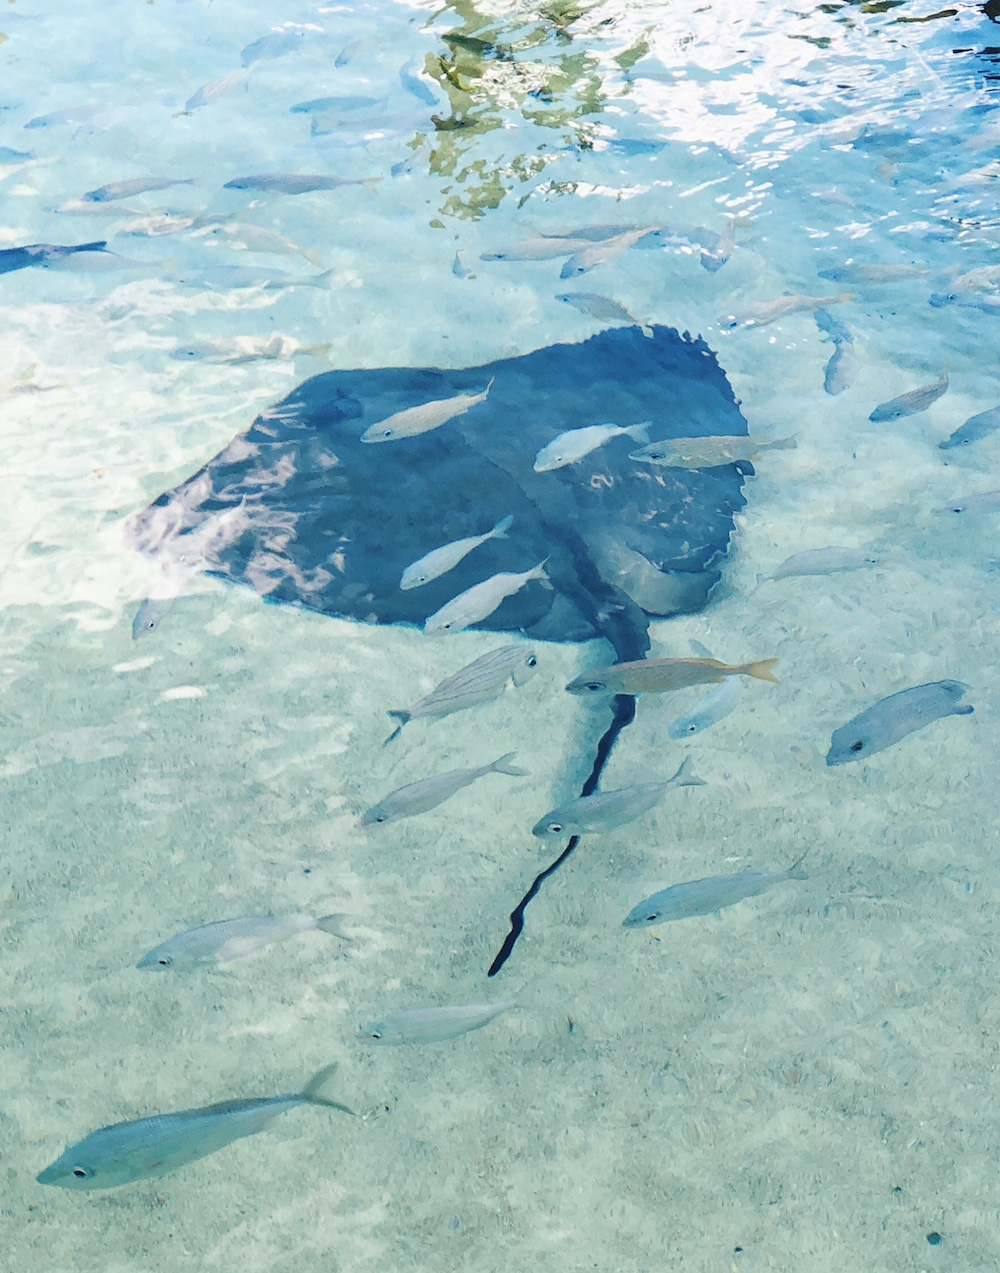 Stingray swimming with fish at Grand Hyatt Baha Mar Bahamas animal sanctuary